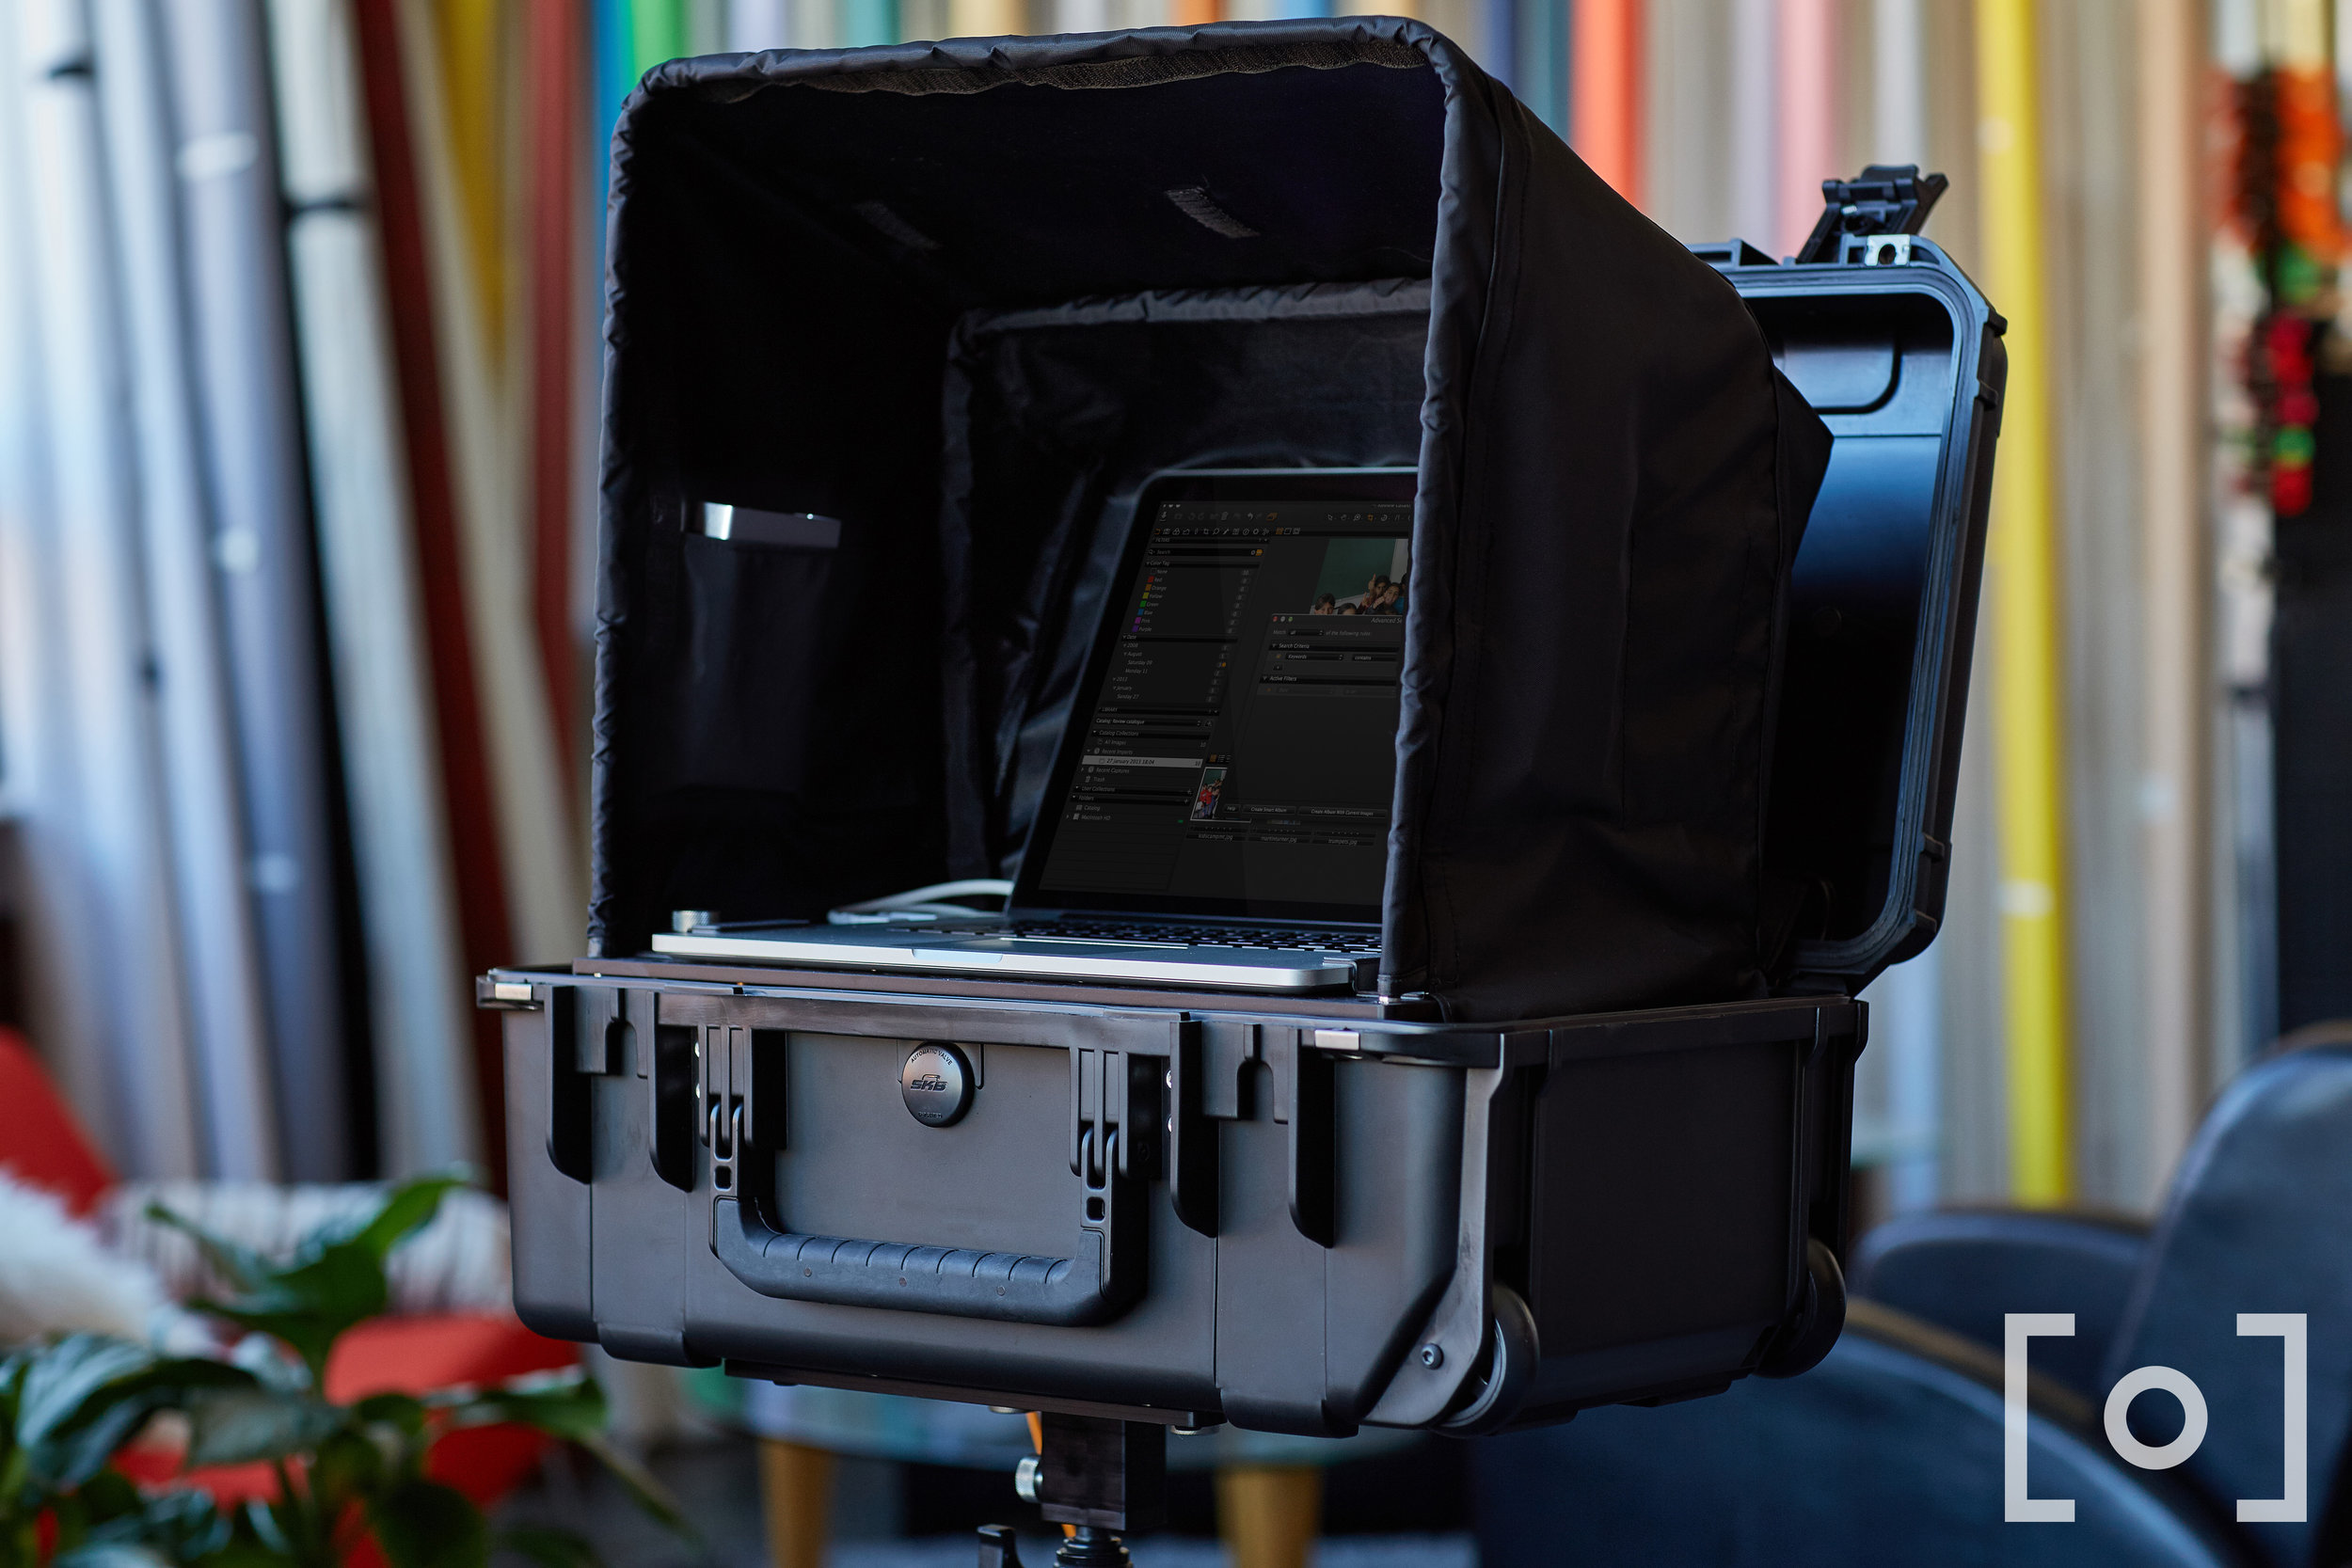 The DigiCase Pro with DigiShade Pro setup on a DigiPlate Pro (Lots of Digis)